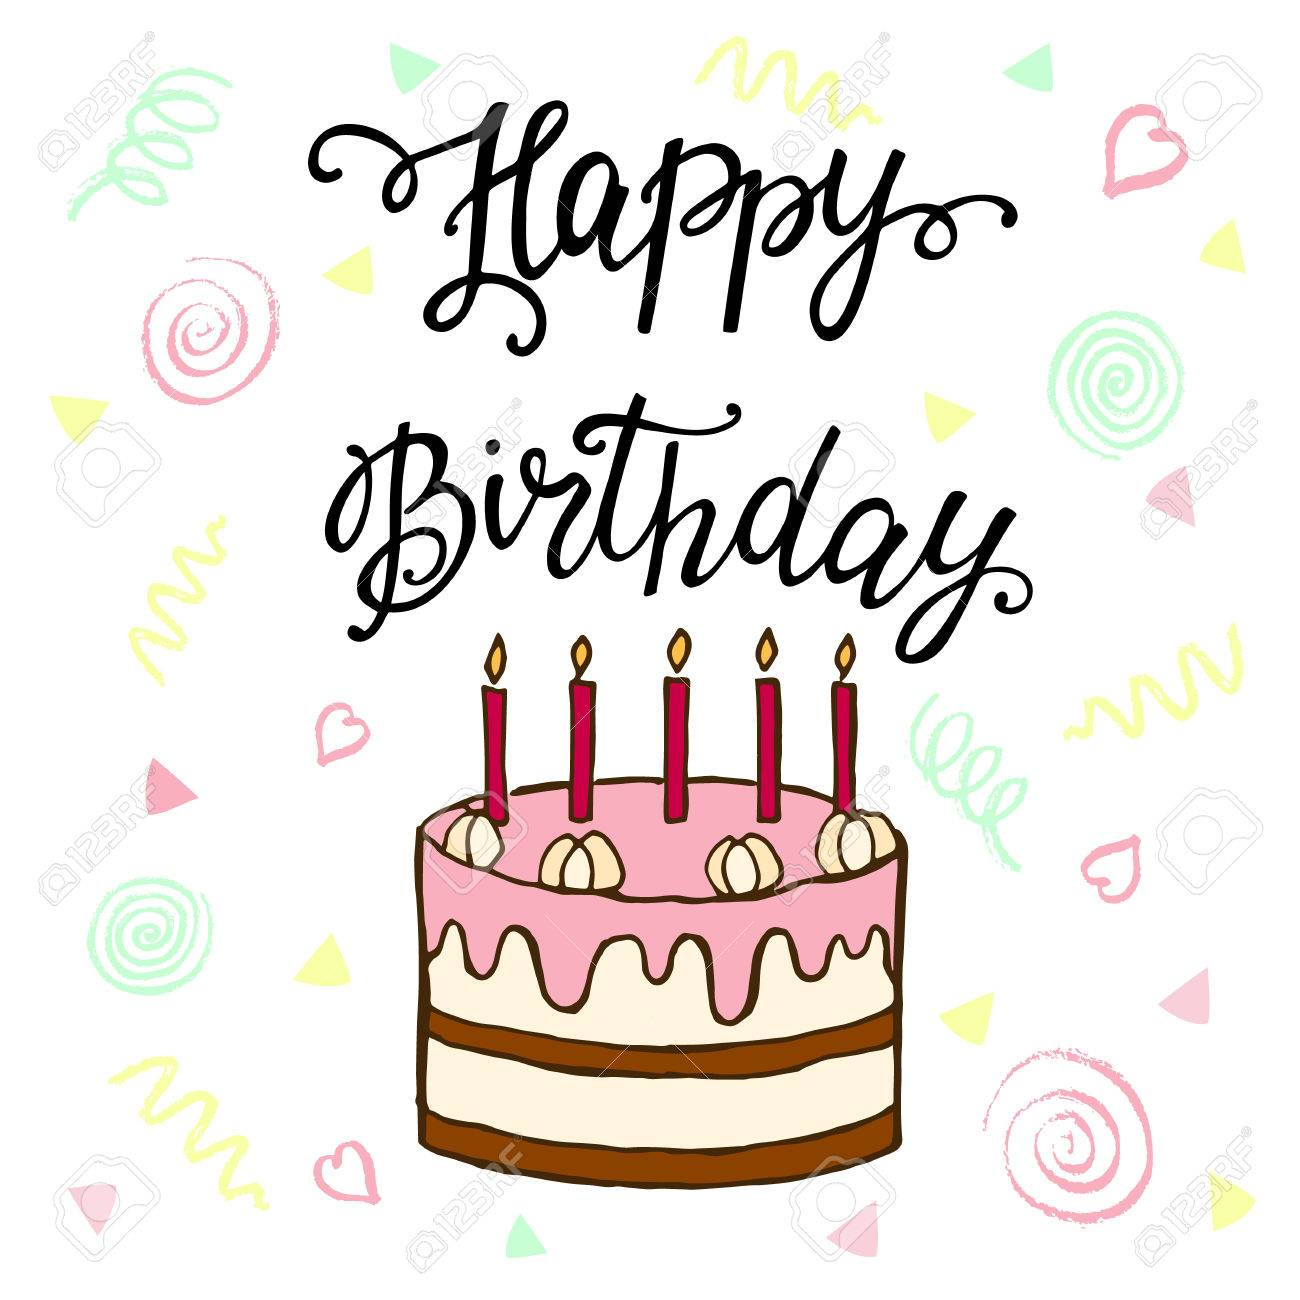 Happy birthday lettering and sweet cake illustration for greeting happy birthday lettering and sweet cake illustration for greeting cards menus invitations and filmwisefo